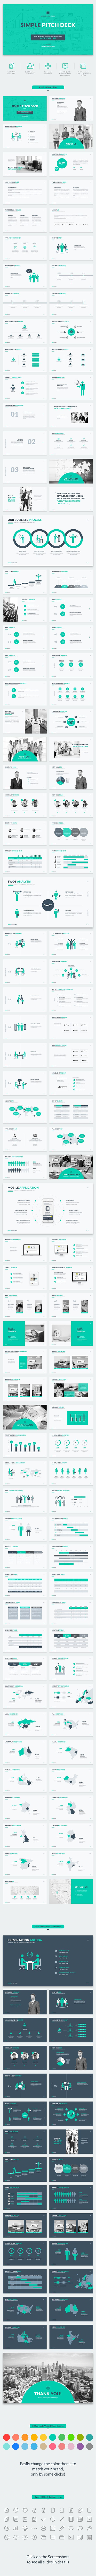 Simple pitch deck powerpoint template project proposal business simple pitch deck keynote template keynote powerpoint pitch deck pitch deck inspirational beautiful minimal creative professional alramifo Gallery